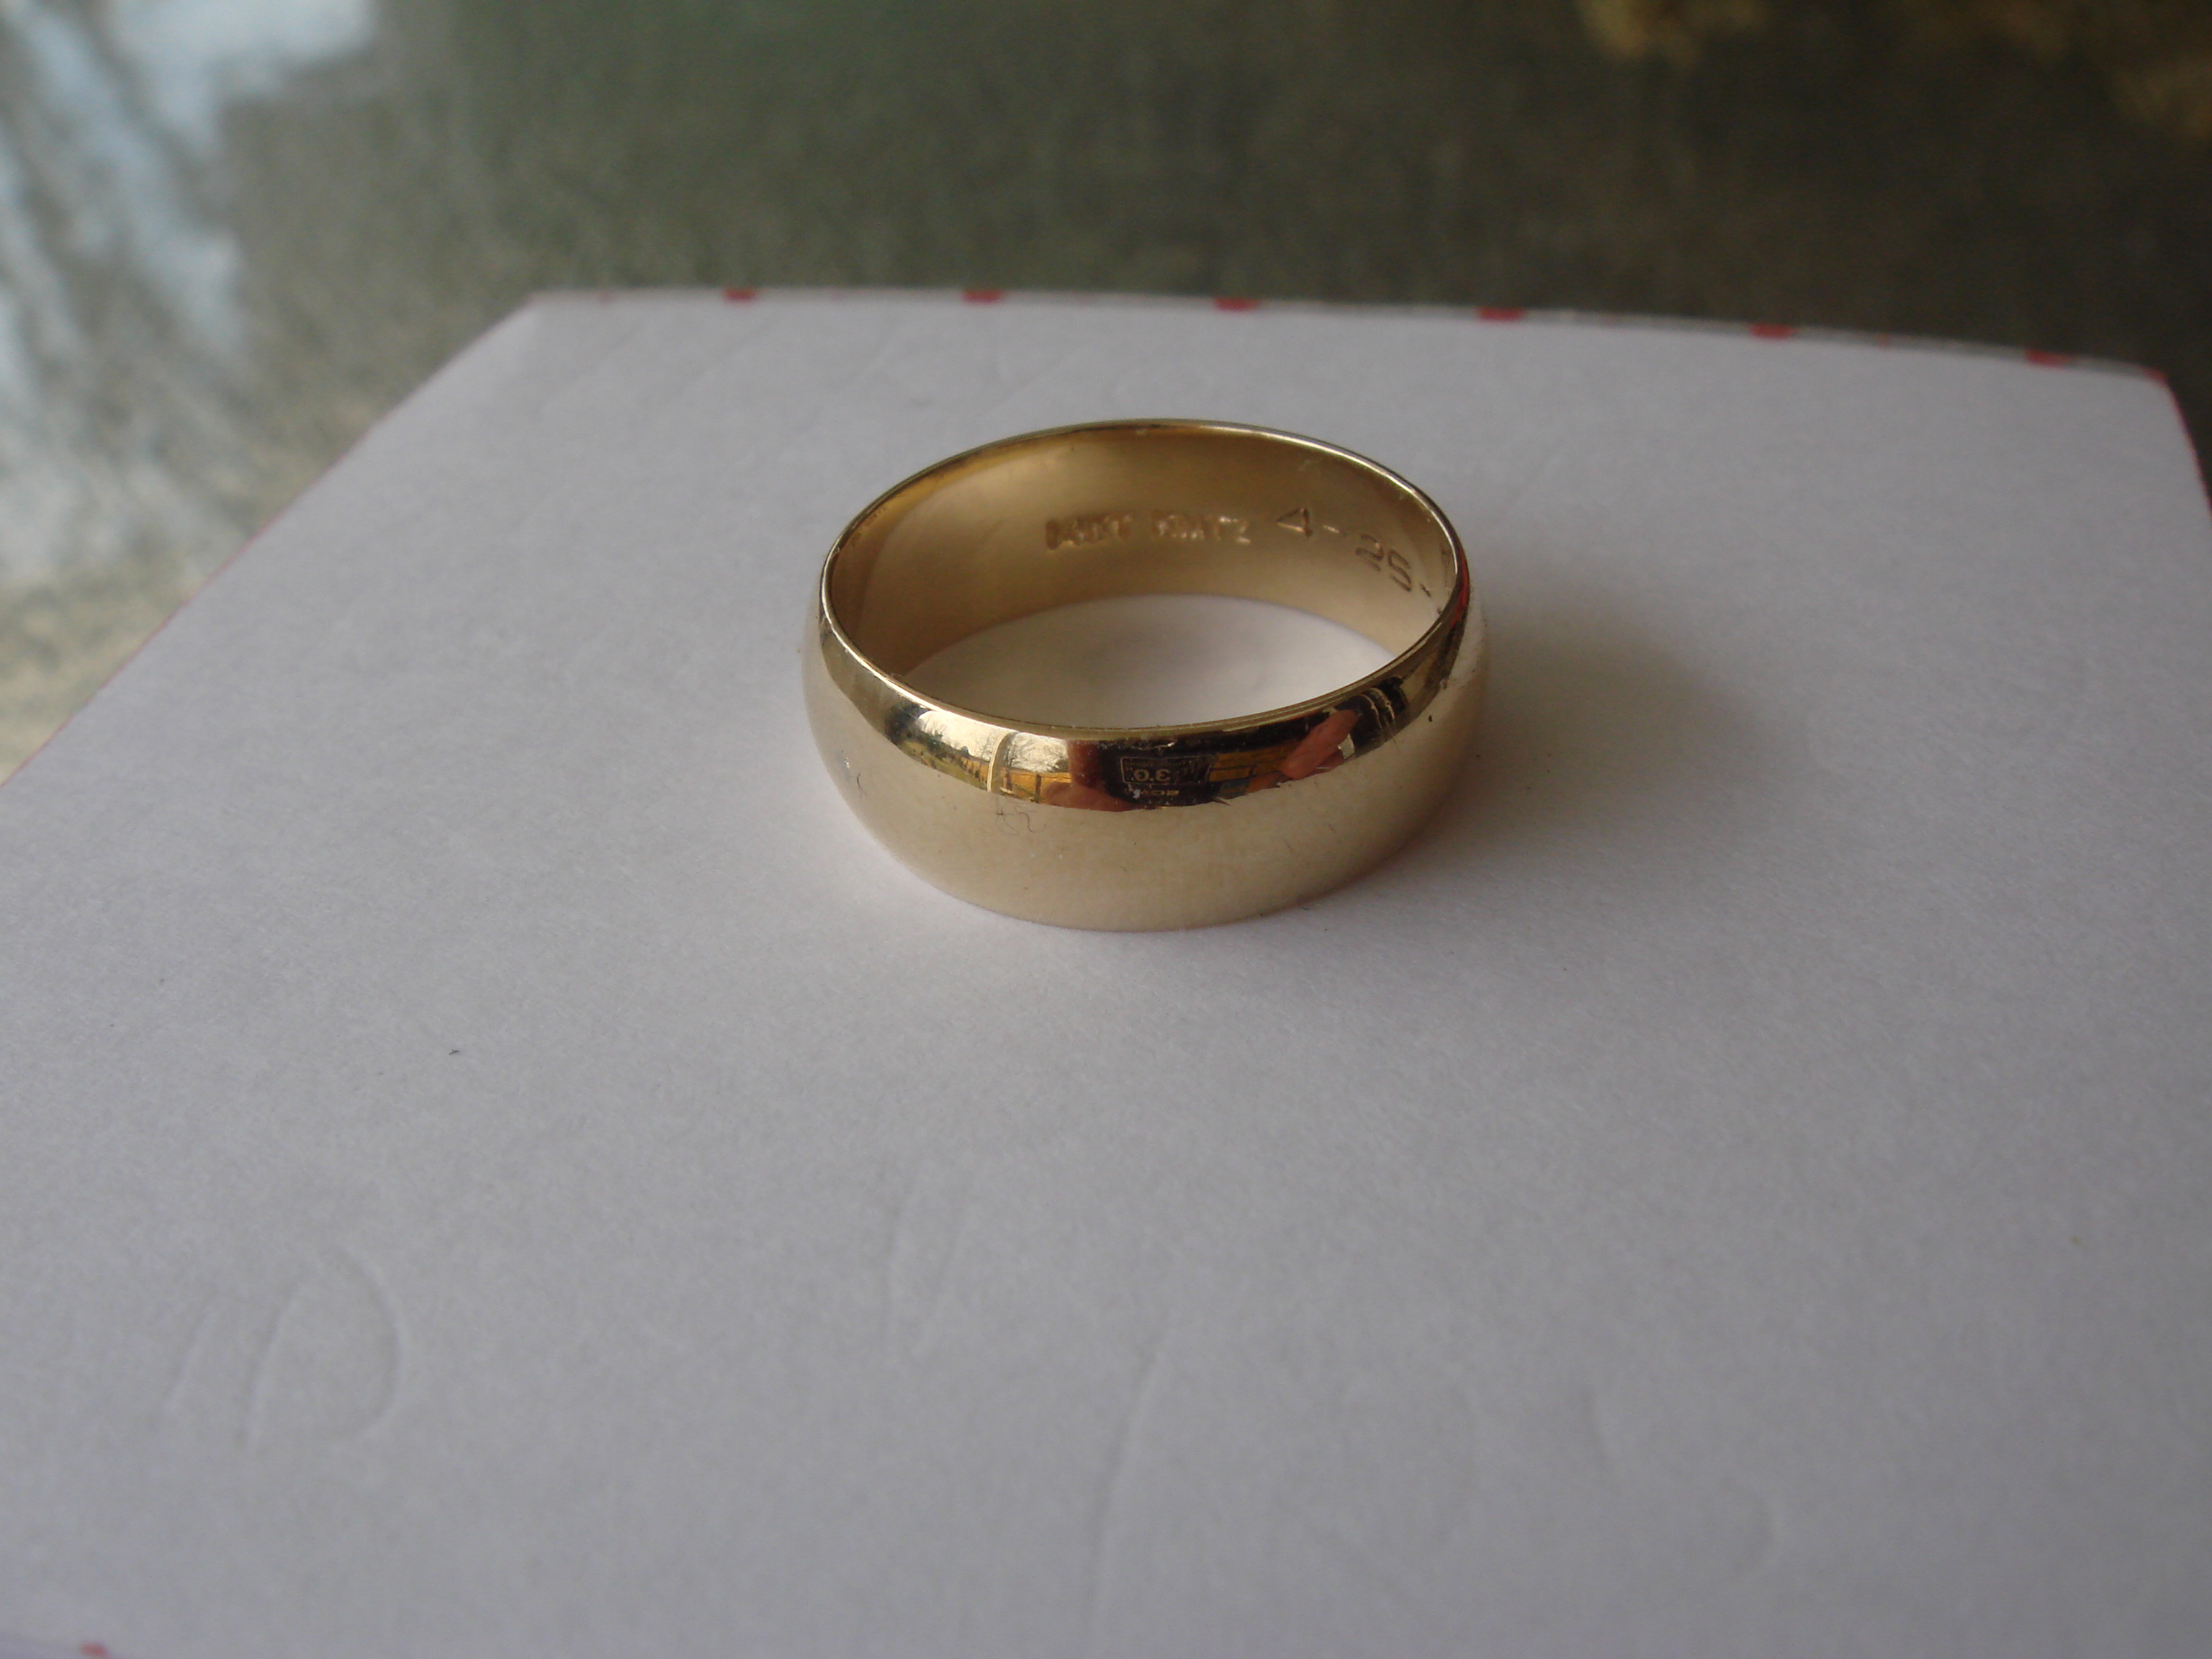 This is an image of 43k Gold Wide Wedding Band